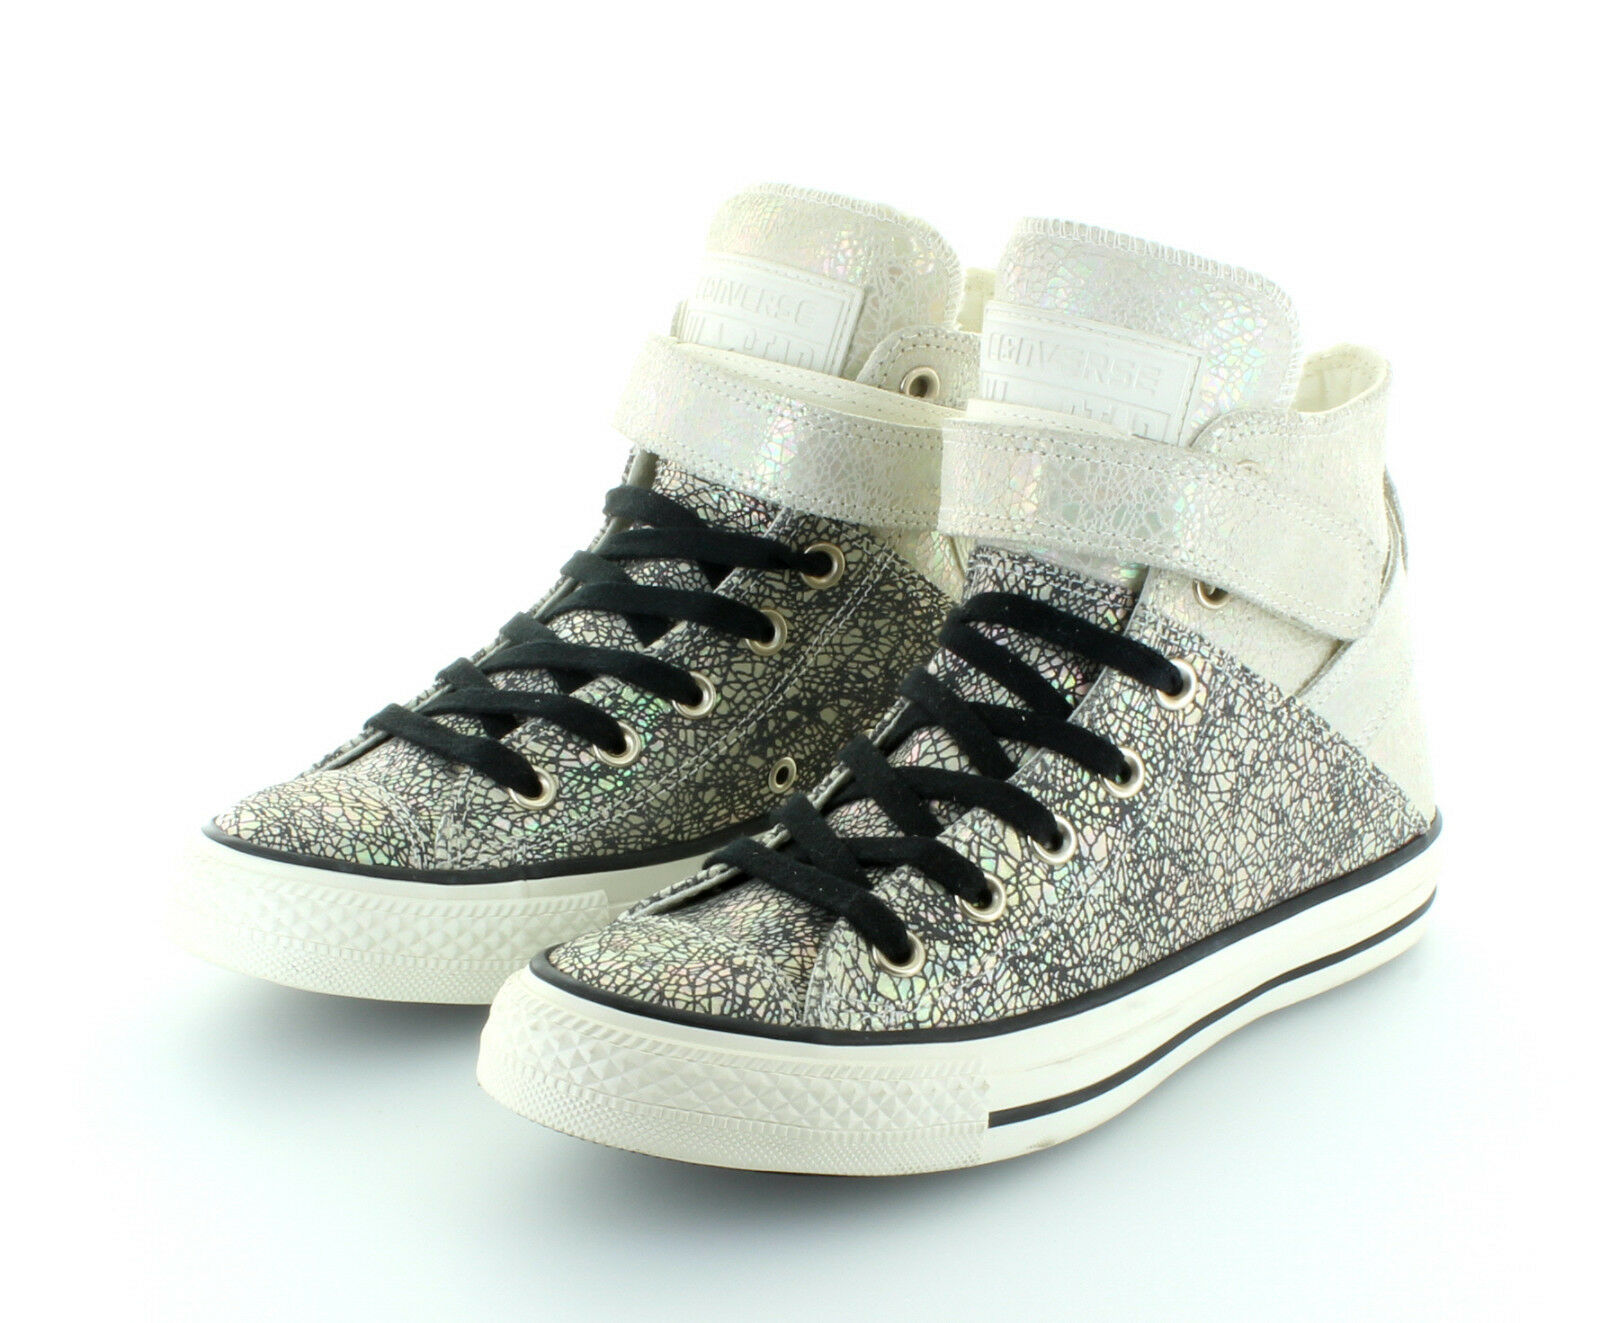 Converse AS CT Hi Brea egret black leather Zip Limited 38,5 Edition Gr. 37,5 / 38,5 Limited 57b8e0